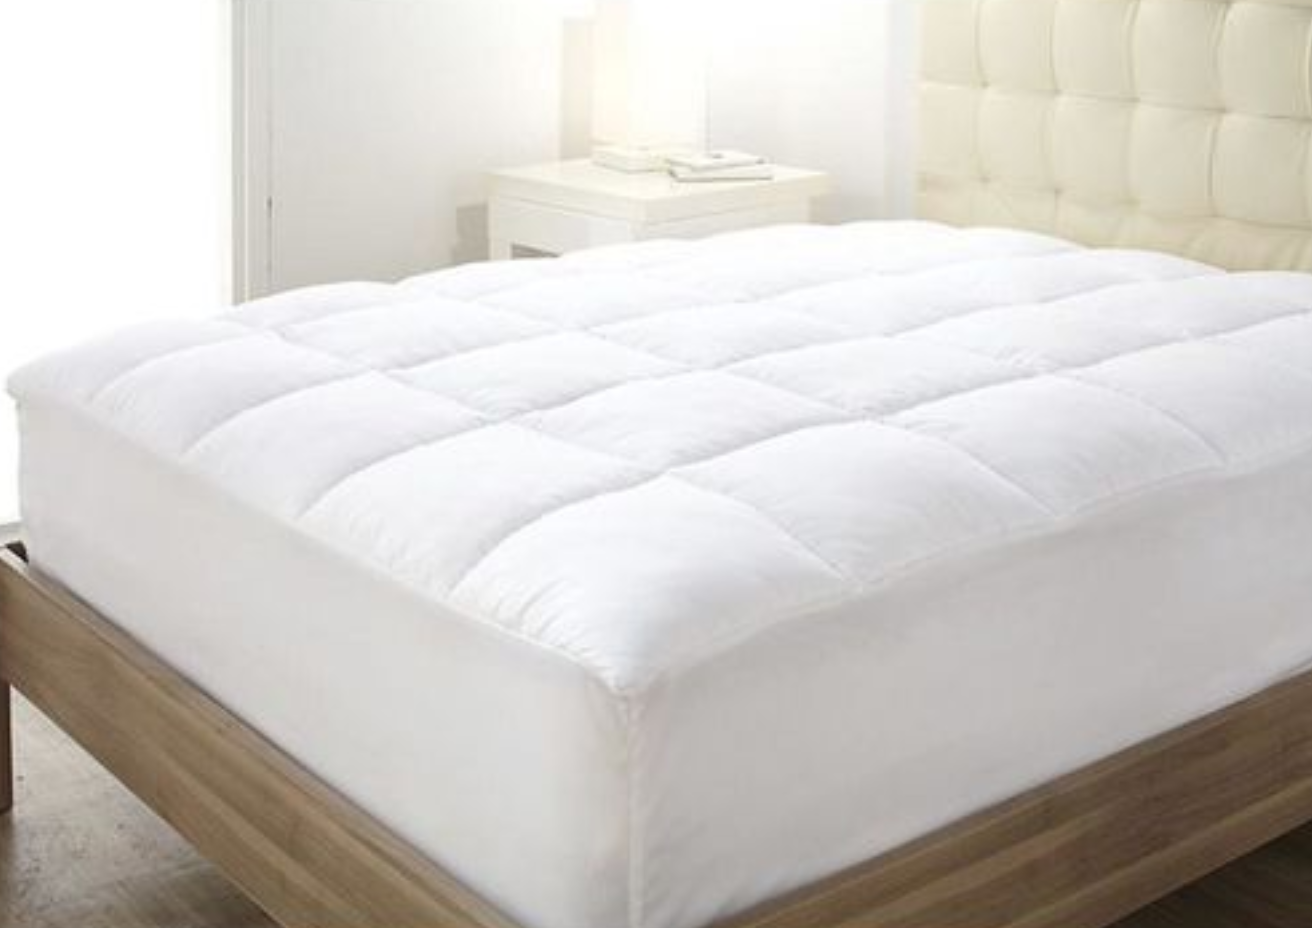 Better Than Down® Mattress Pad